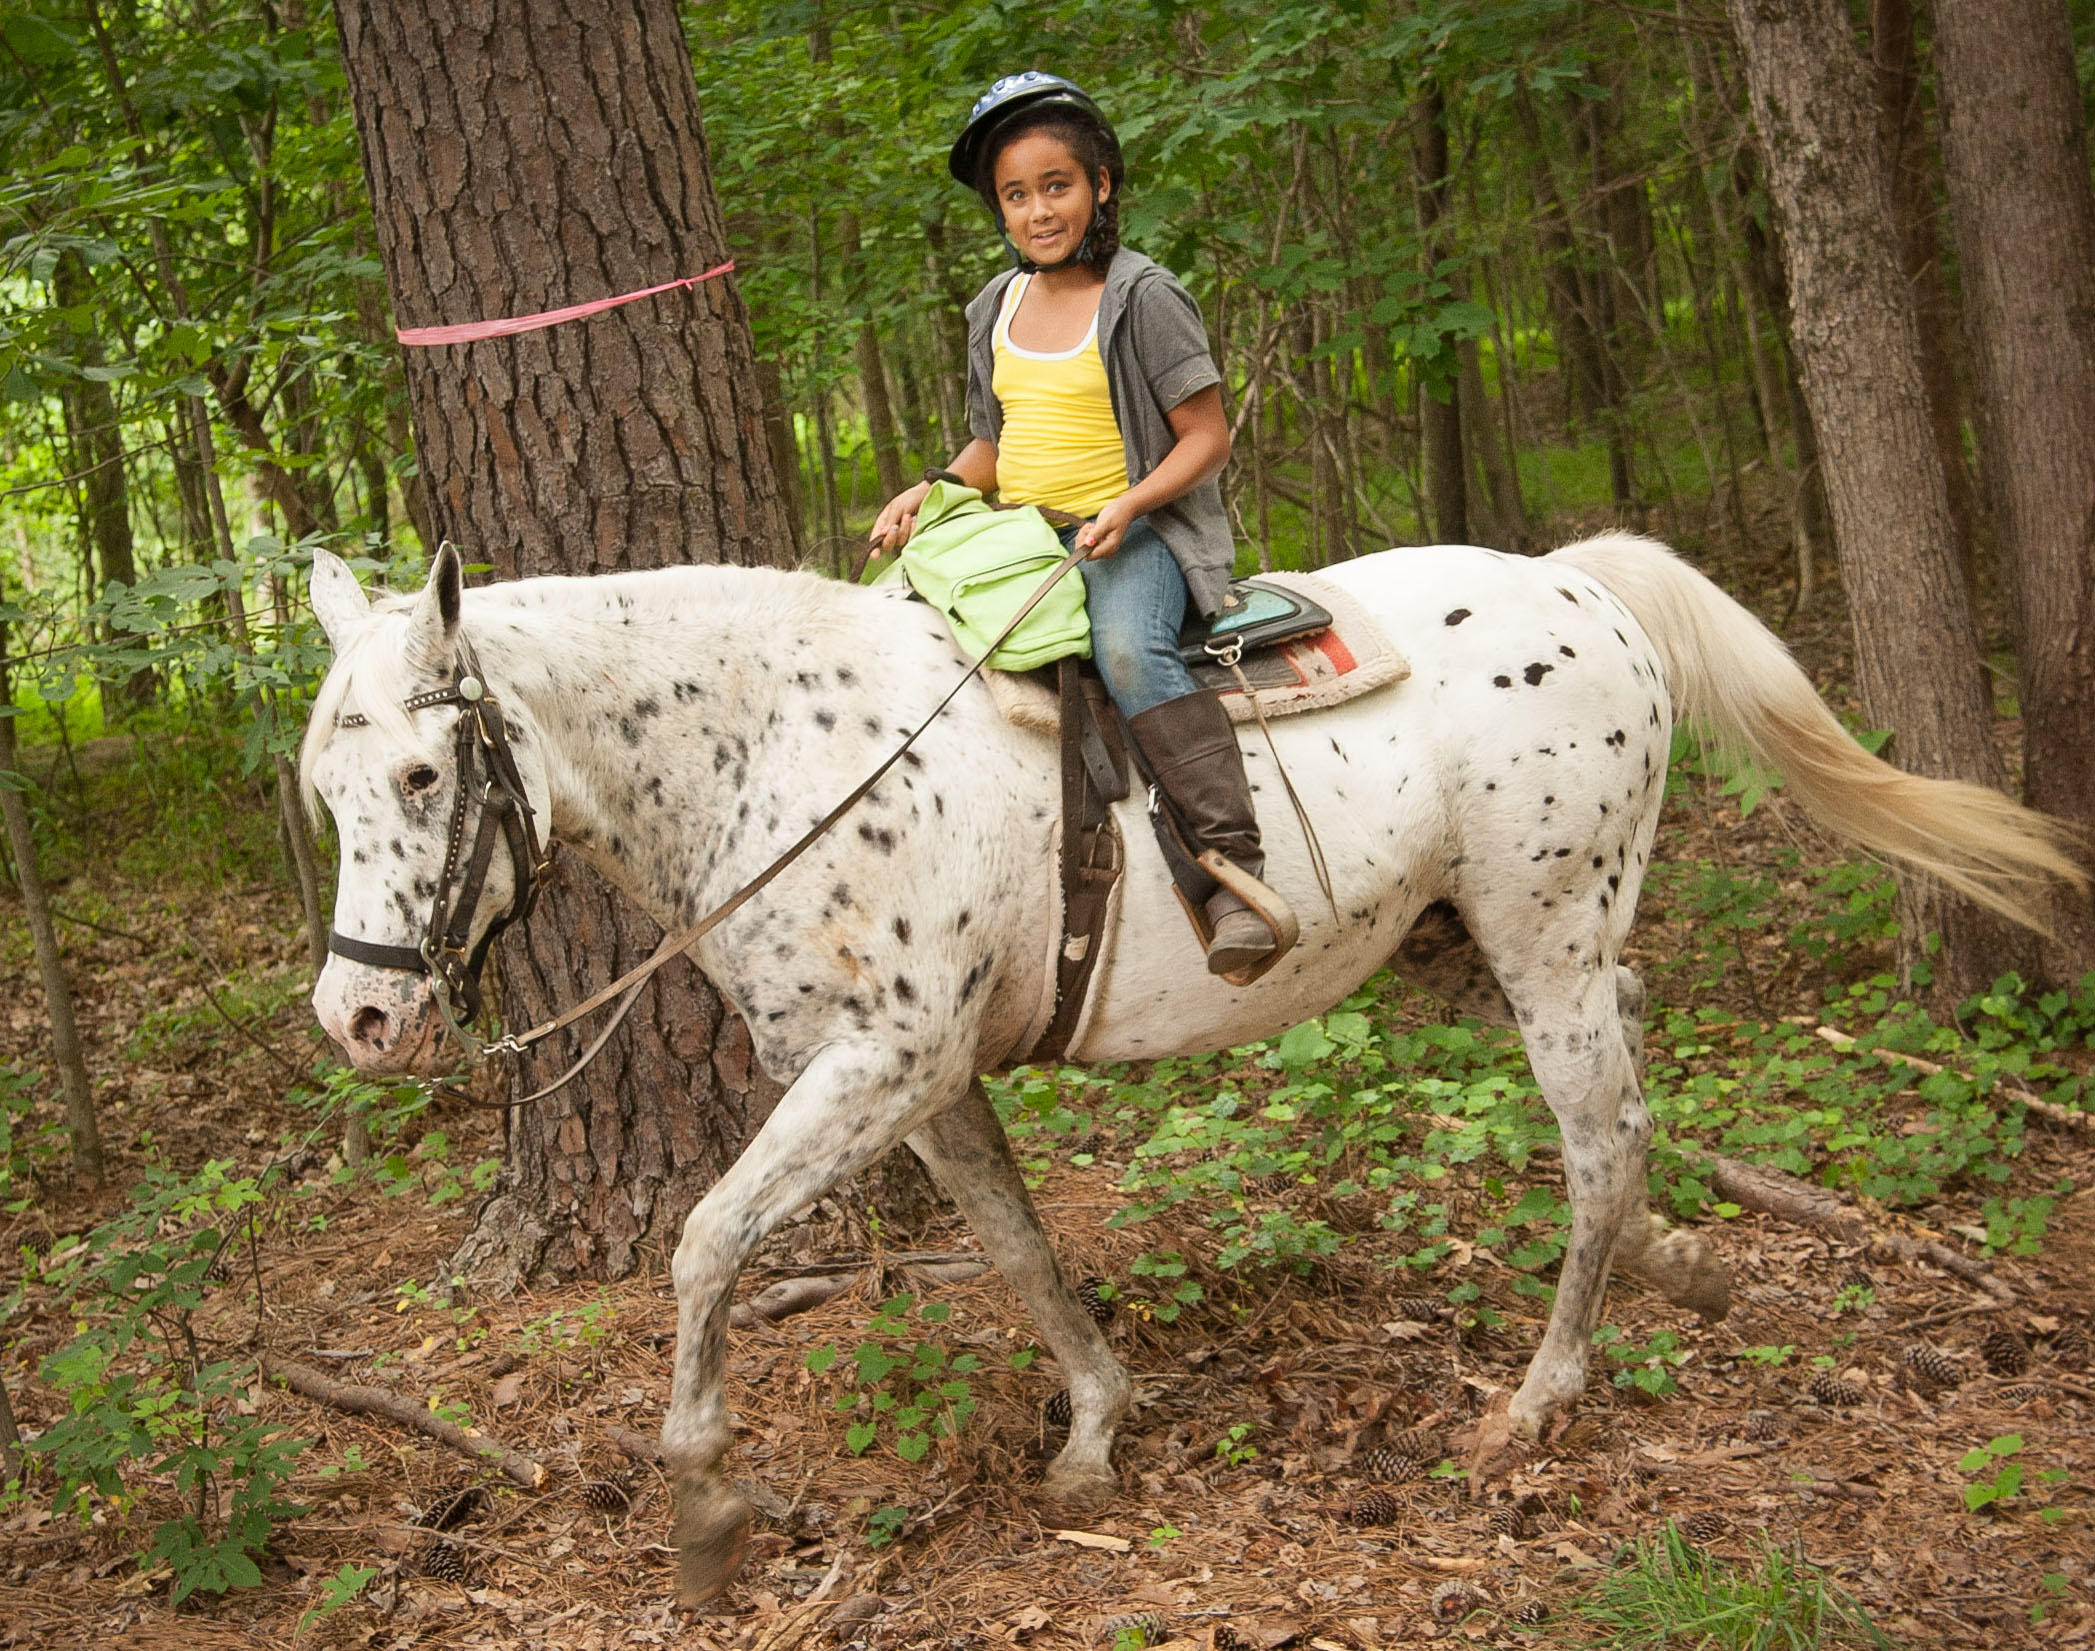 Little Girl at Horseback Riding Camp in Raleigh, NC